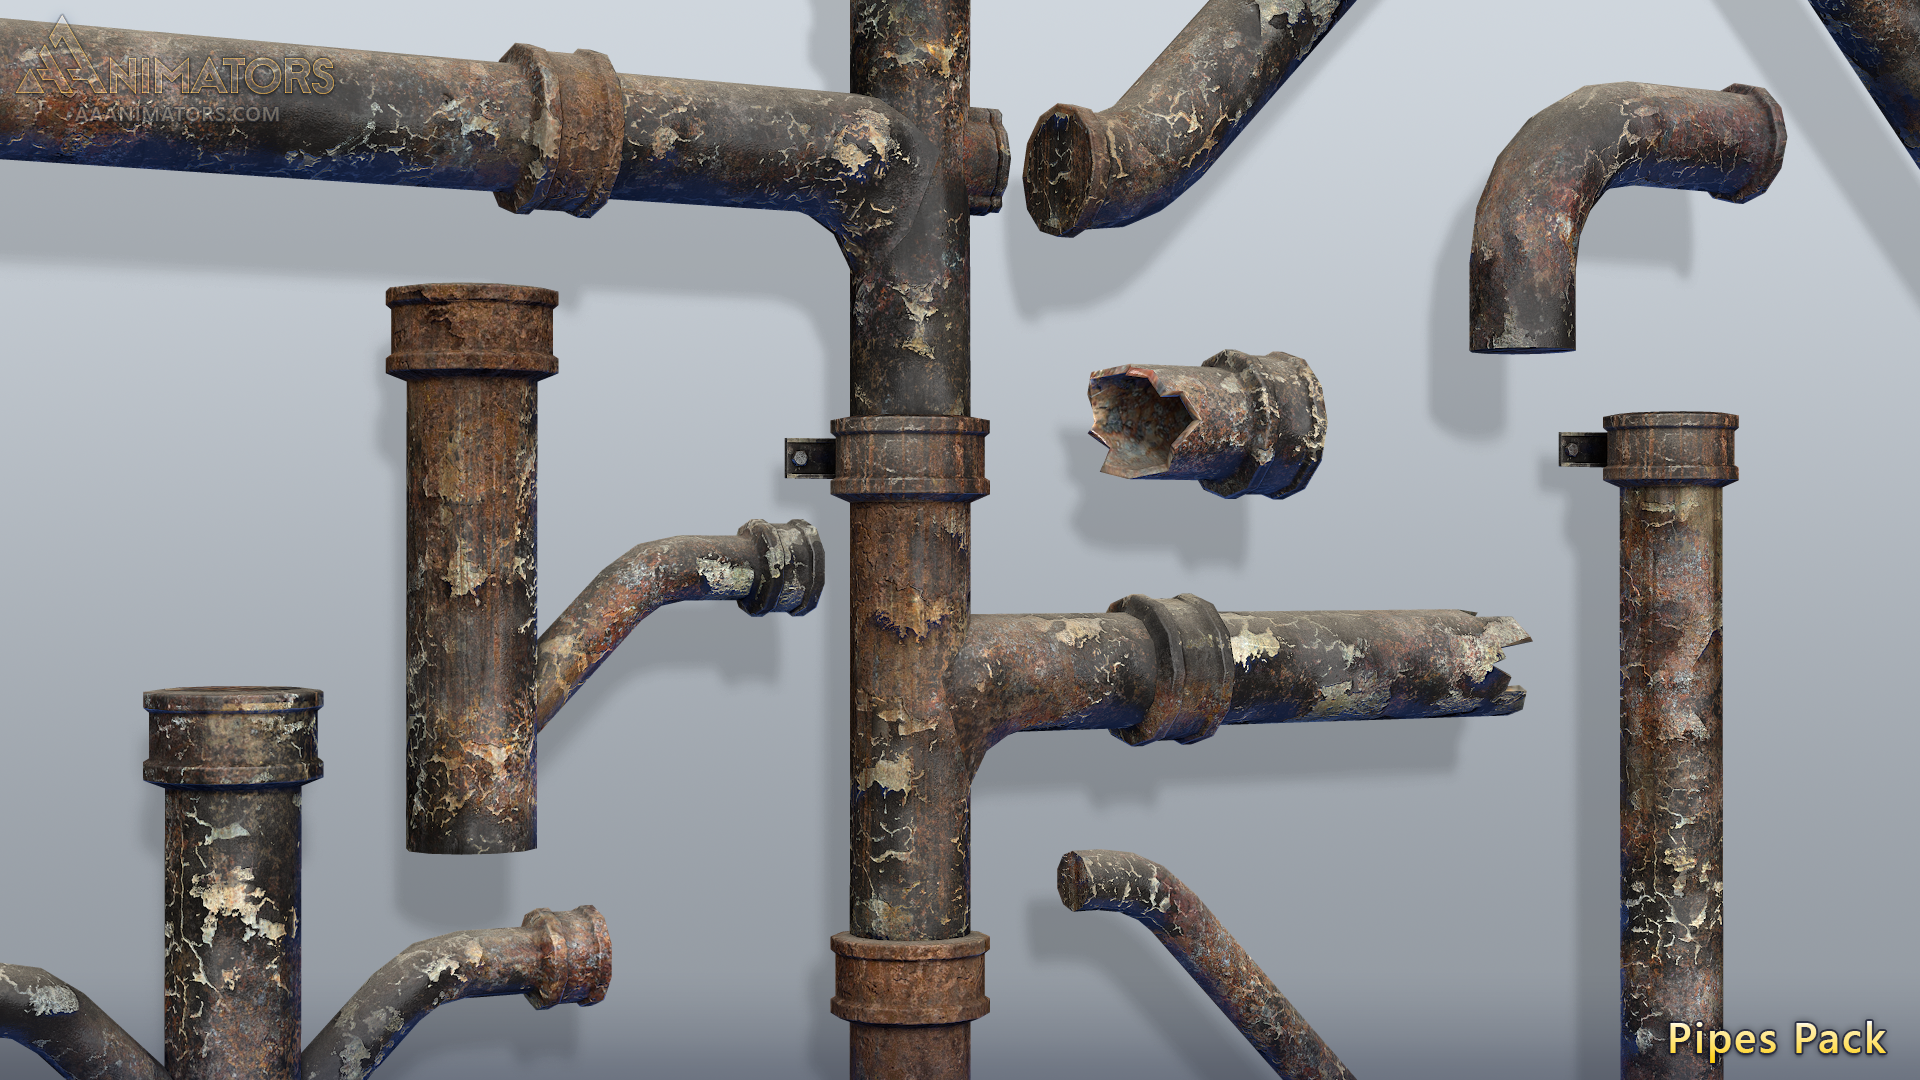 3D Asset Pack: Low Poly Pipes Pack 1 - AAA Animators - Medium